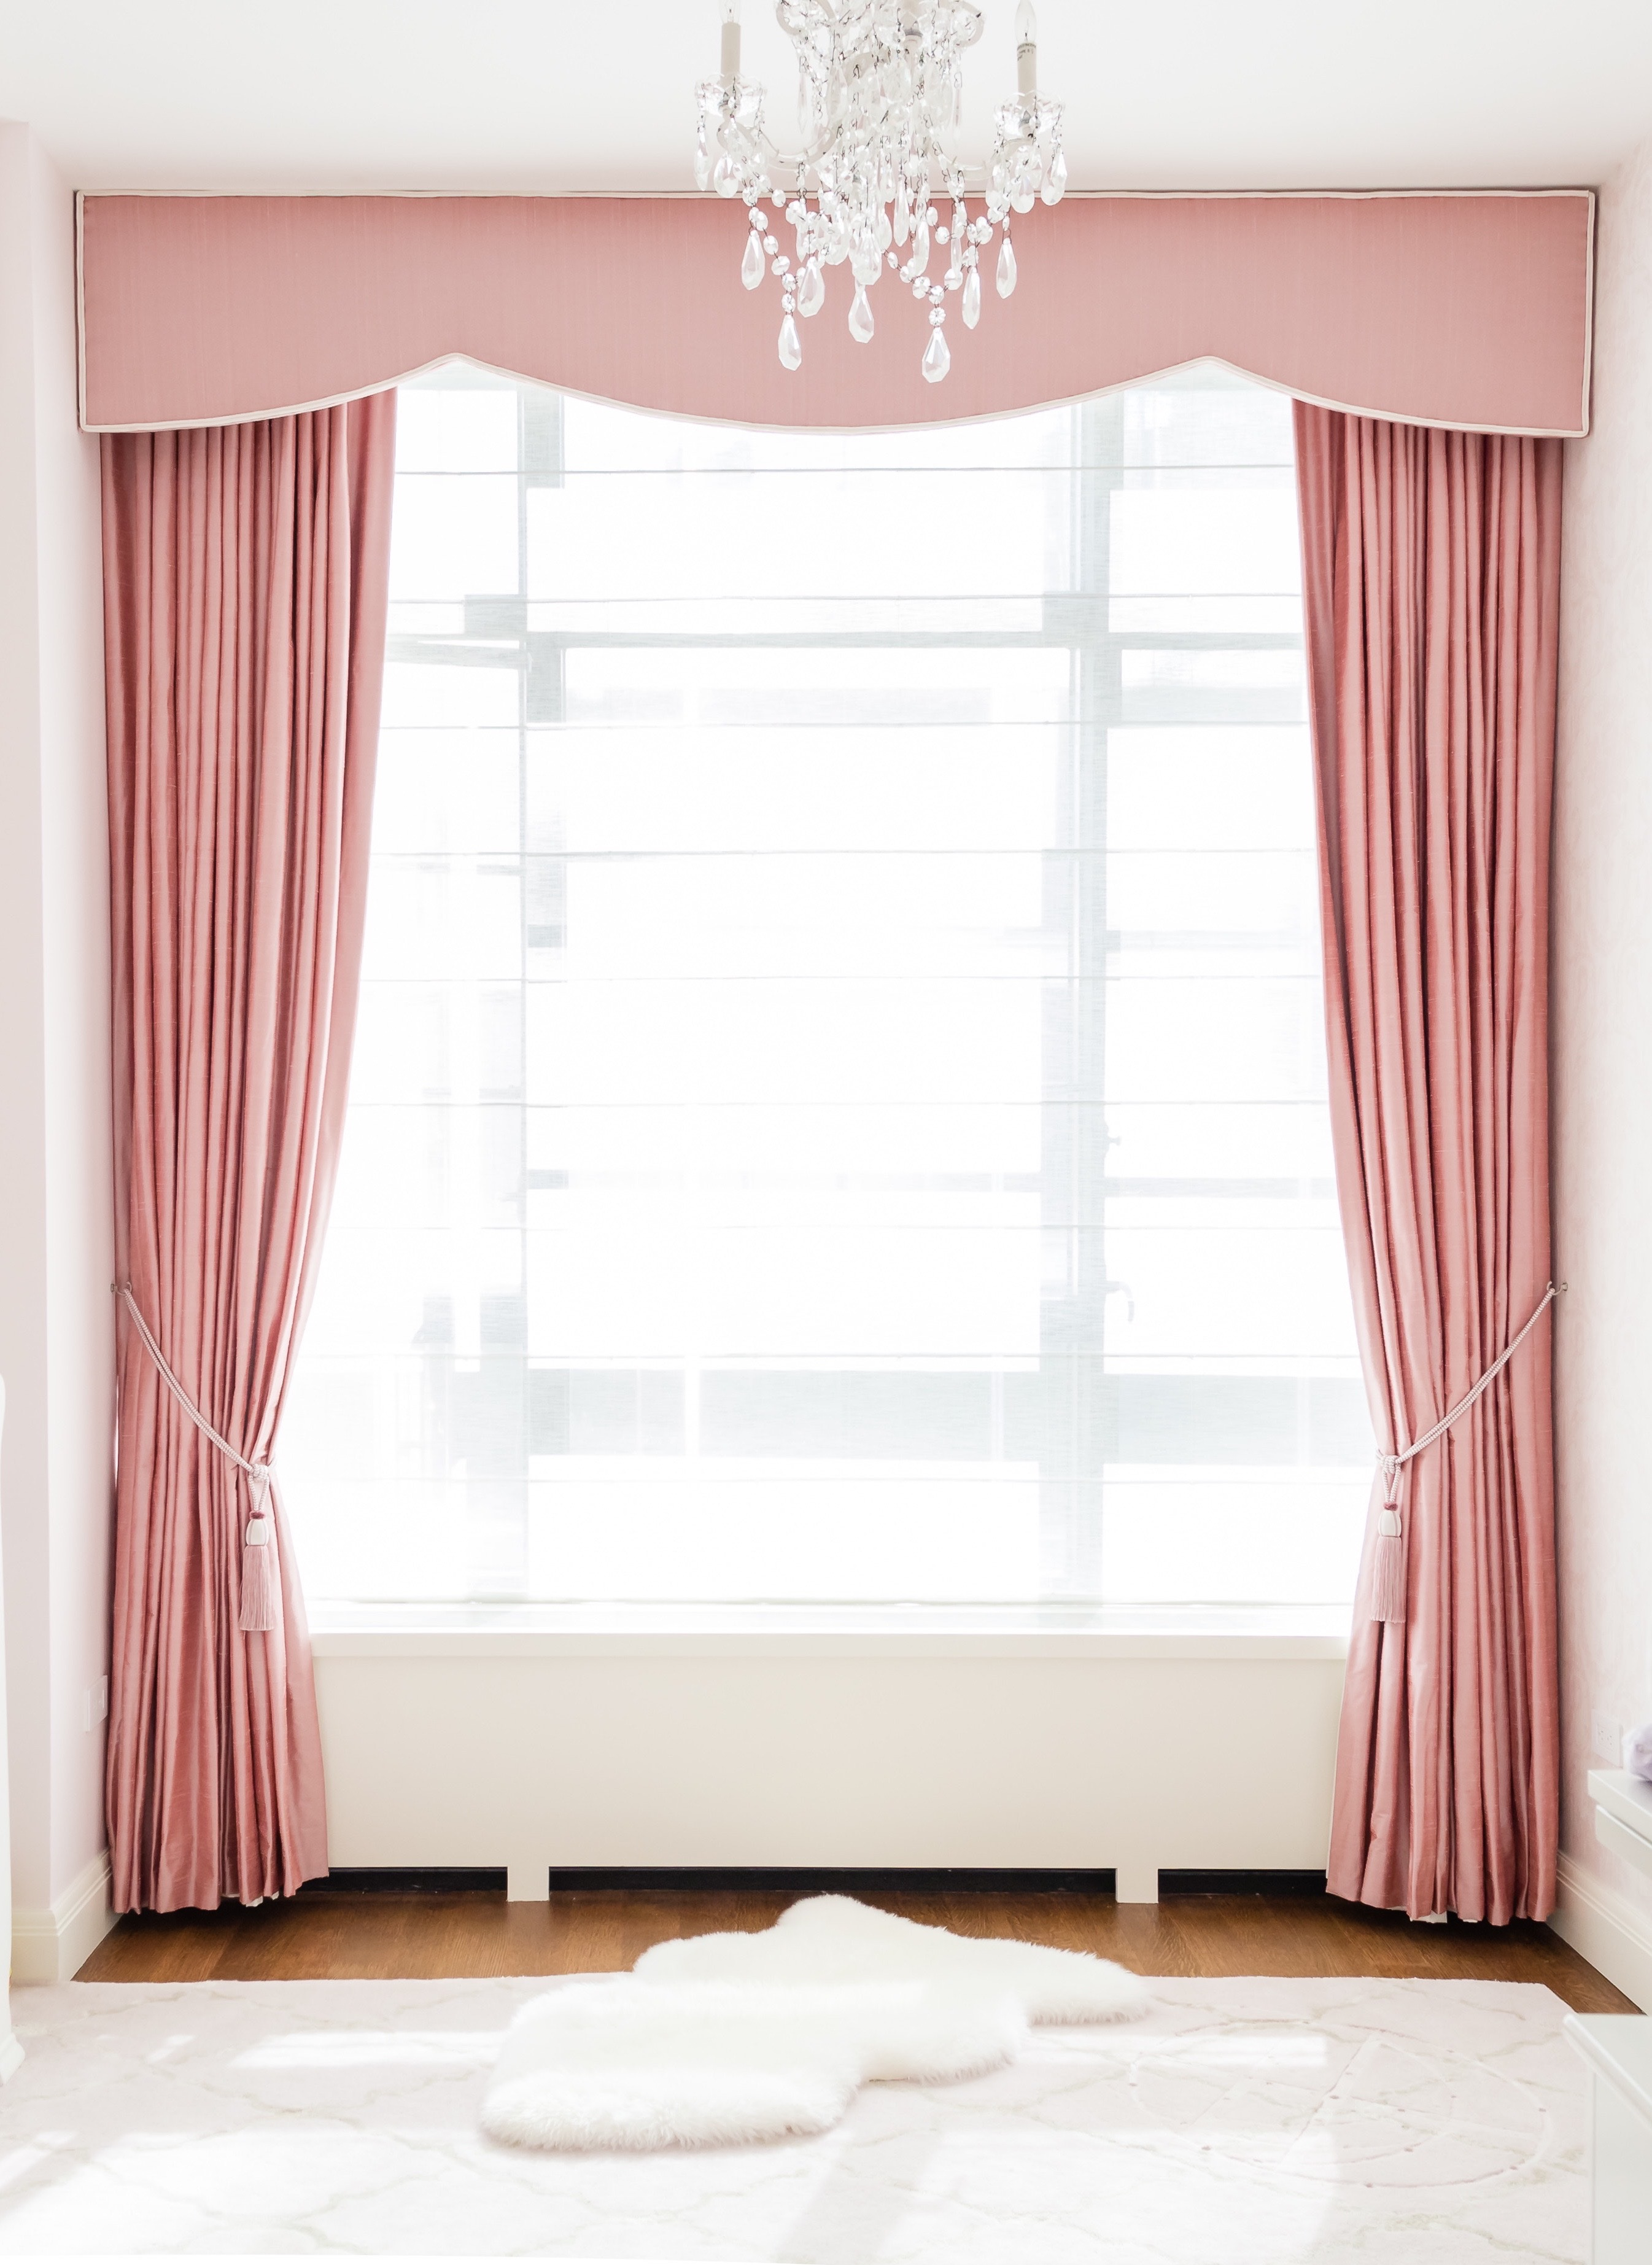 Window treatments house of style design interior for Latest window treatments 2017